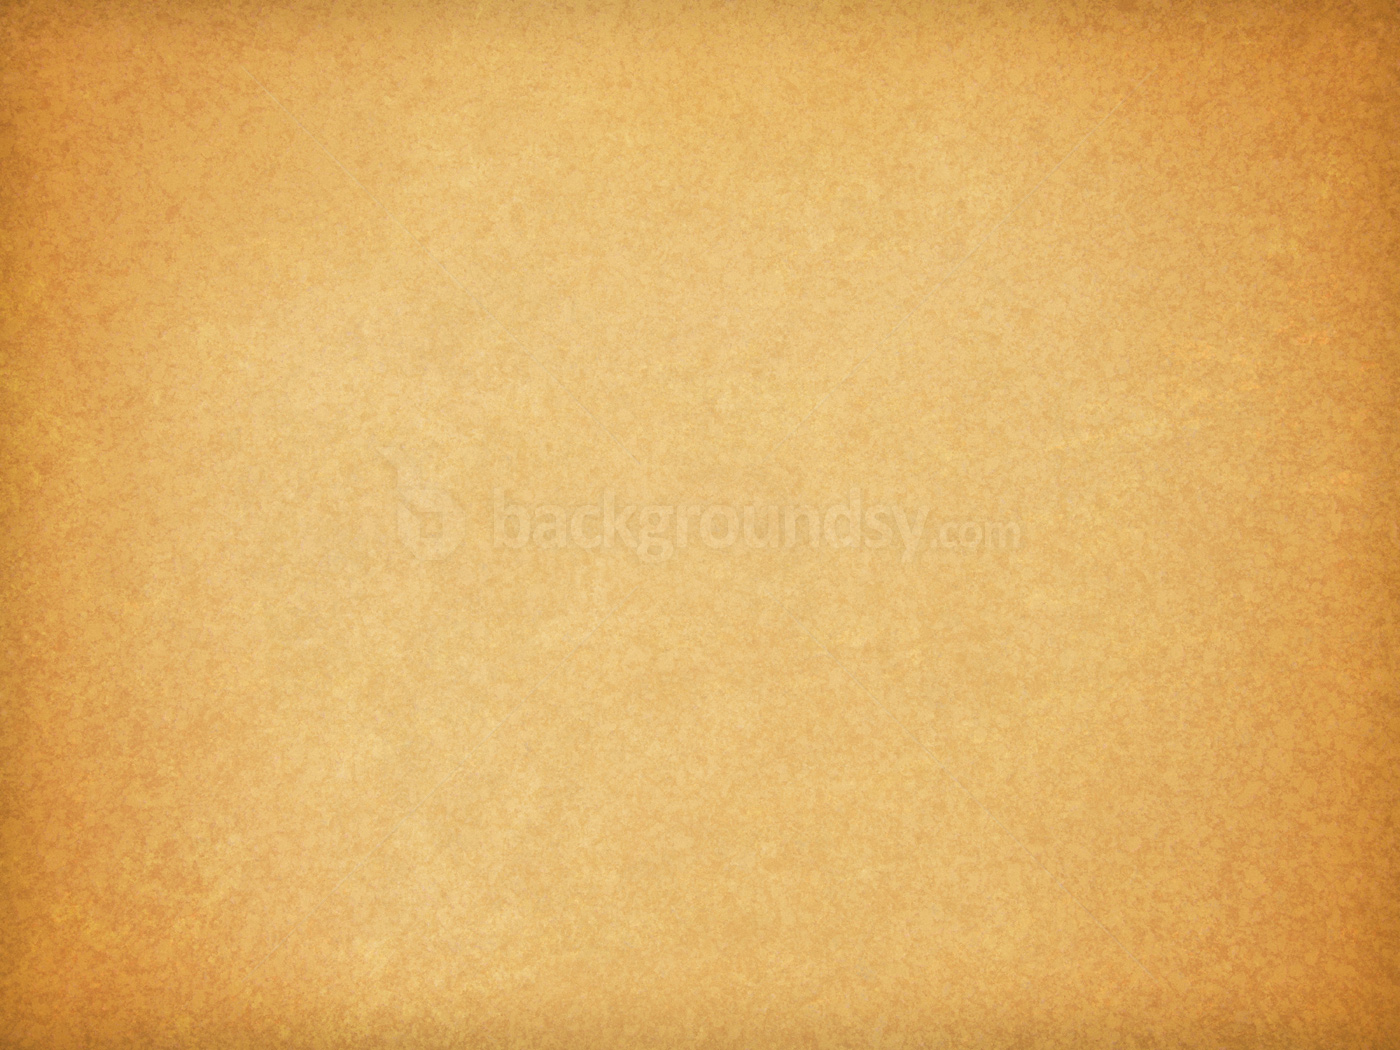 paper texture background - photo #31